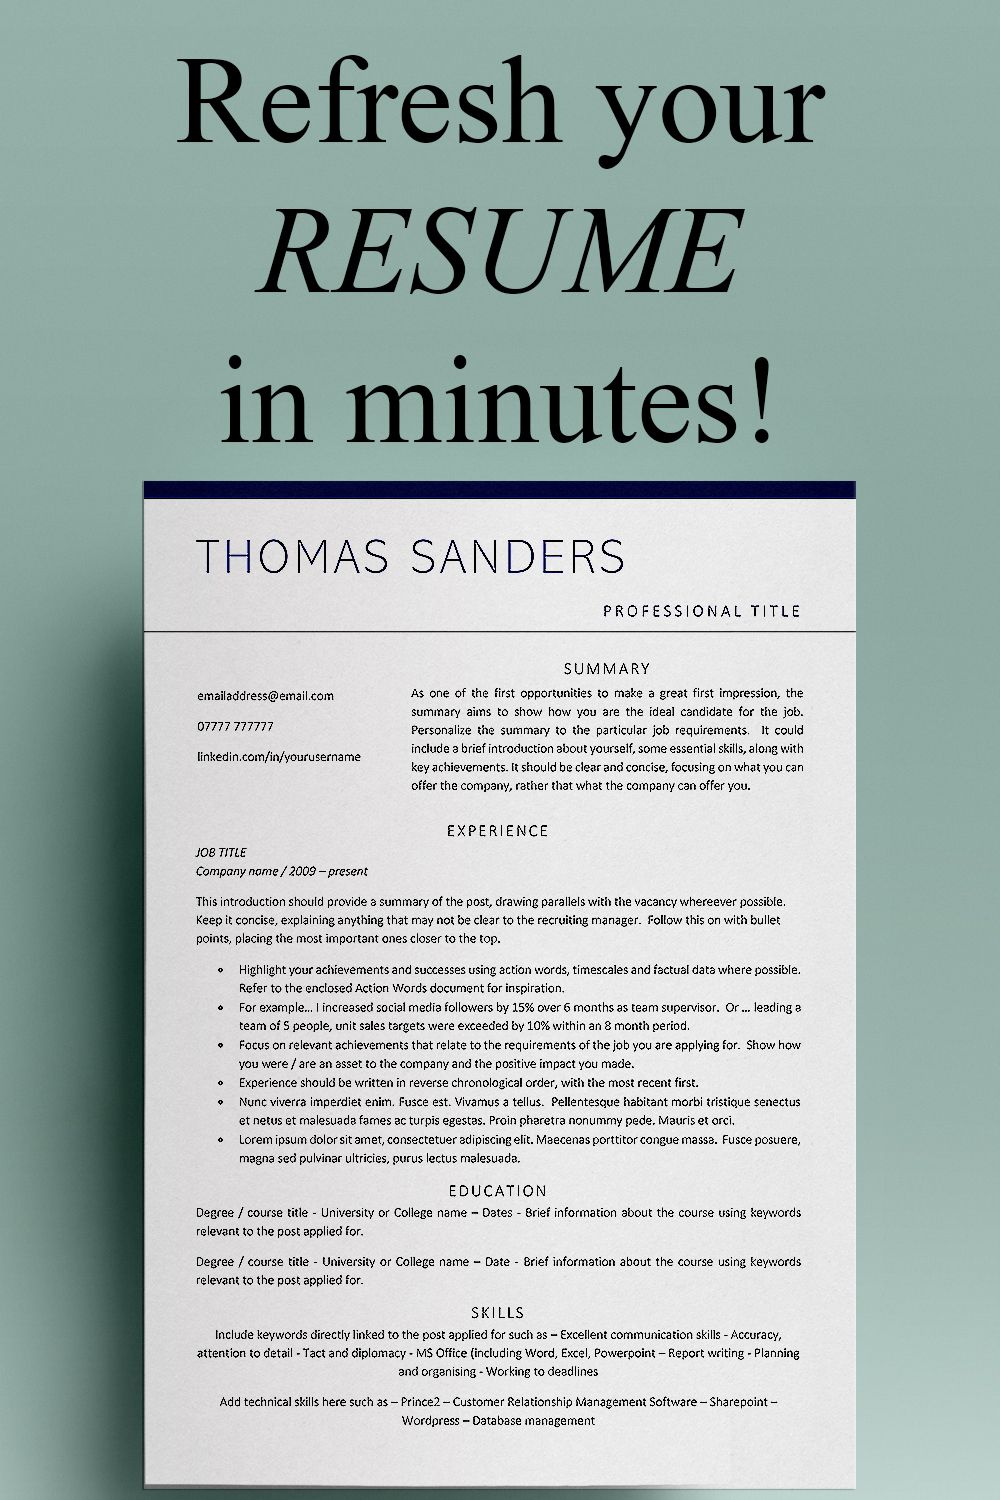 Curriculum Vitae Cv Template Cv Resume Template Marketing Etsy Cv Template Resume Words Marketing Resume